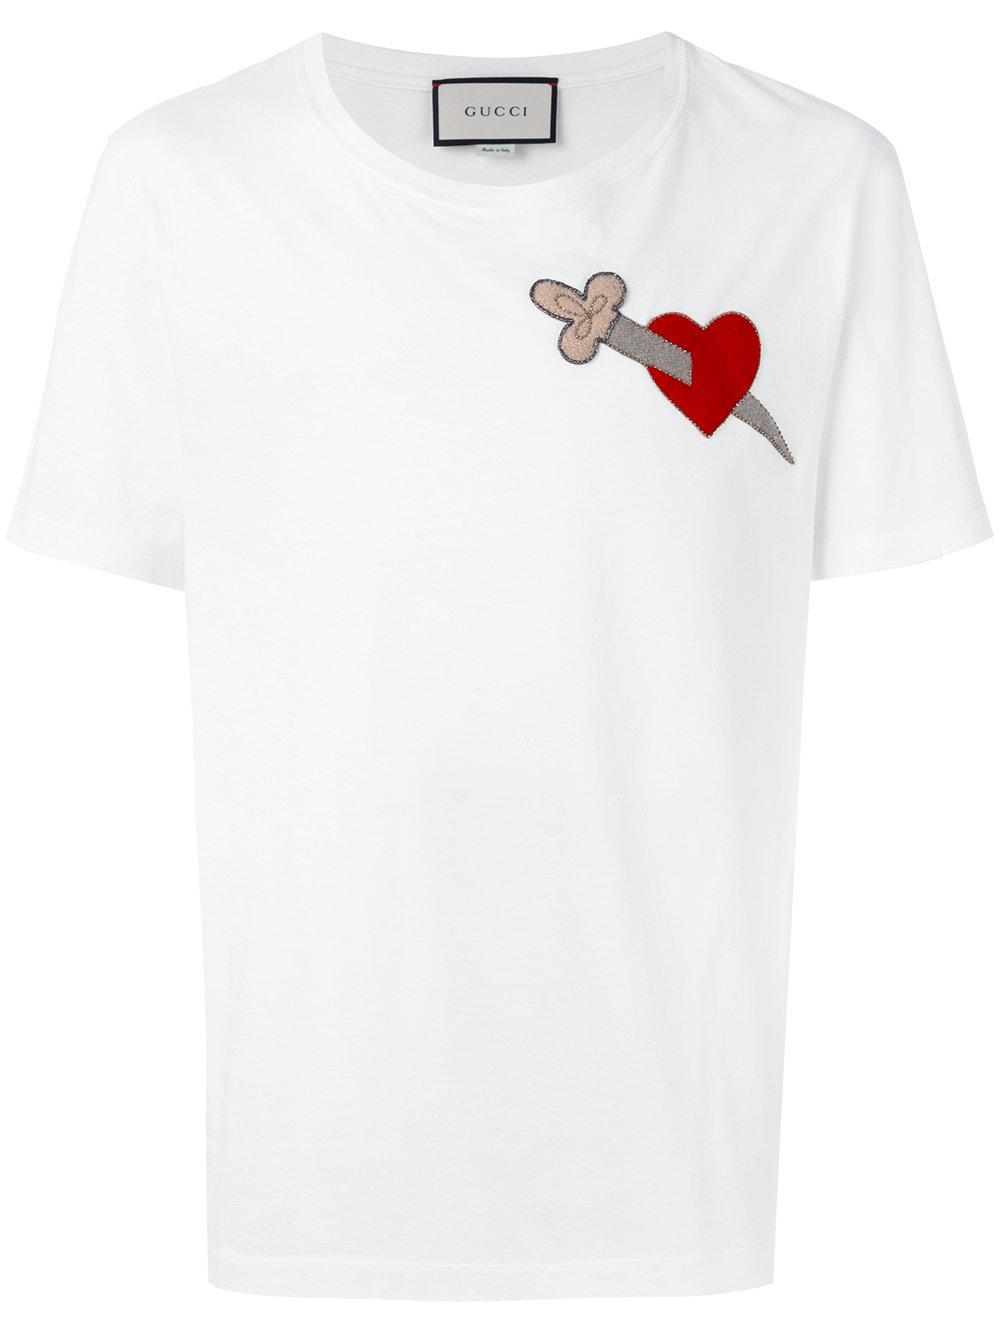 eefd26bb Gucci Stabbed Heart T-shirt in White for Men - Lyst